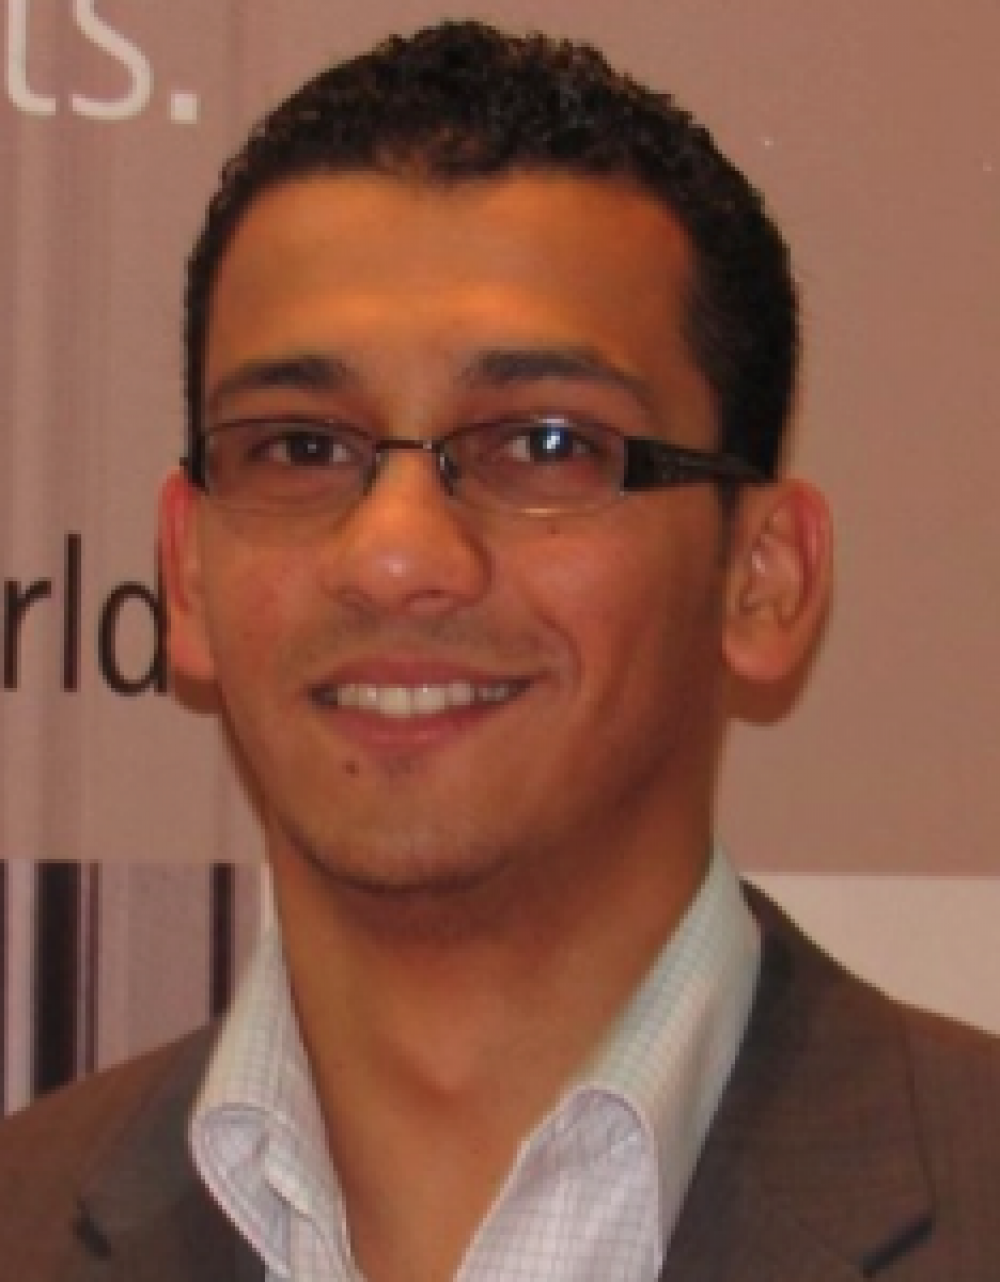 Arecont Vision® Welcomes Mohammed Khoga as New Regional Sales Manager in the Middle East